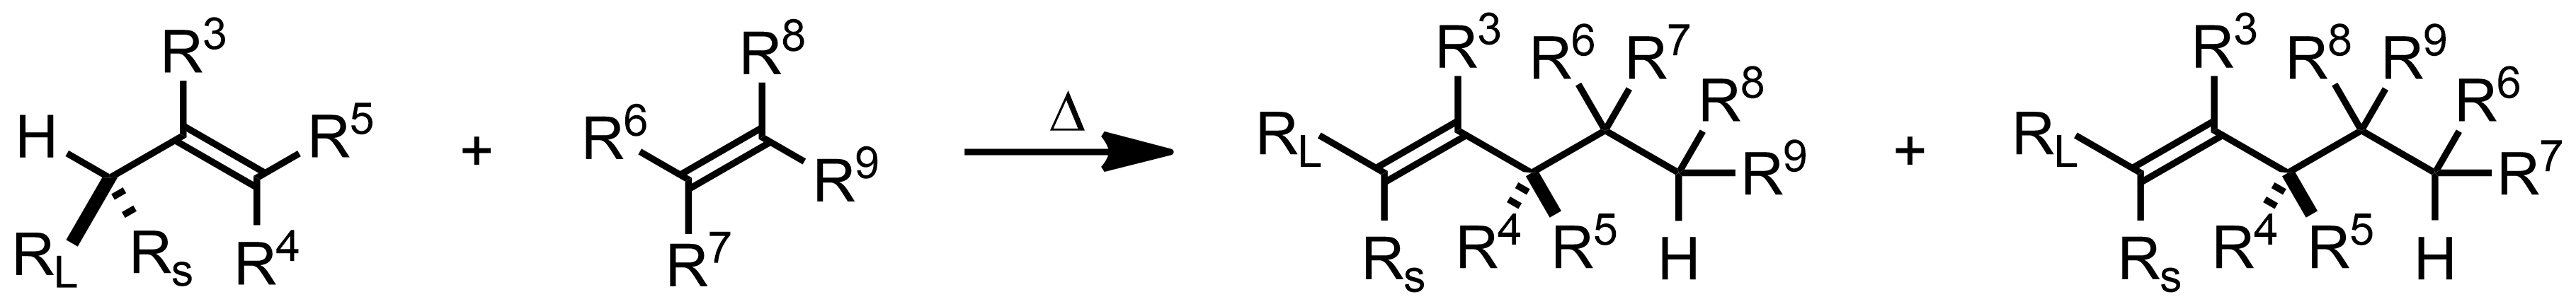 Schematic representation of the Ene Reaction.